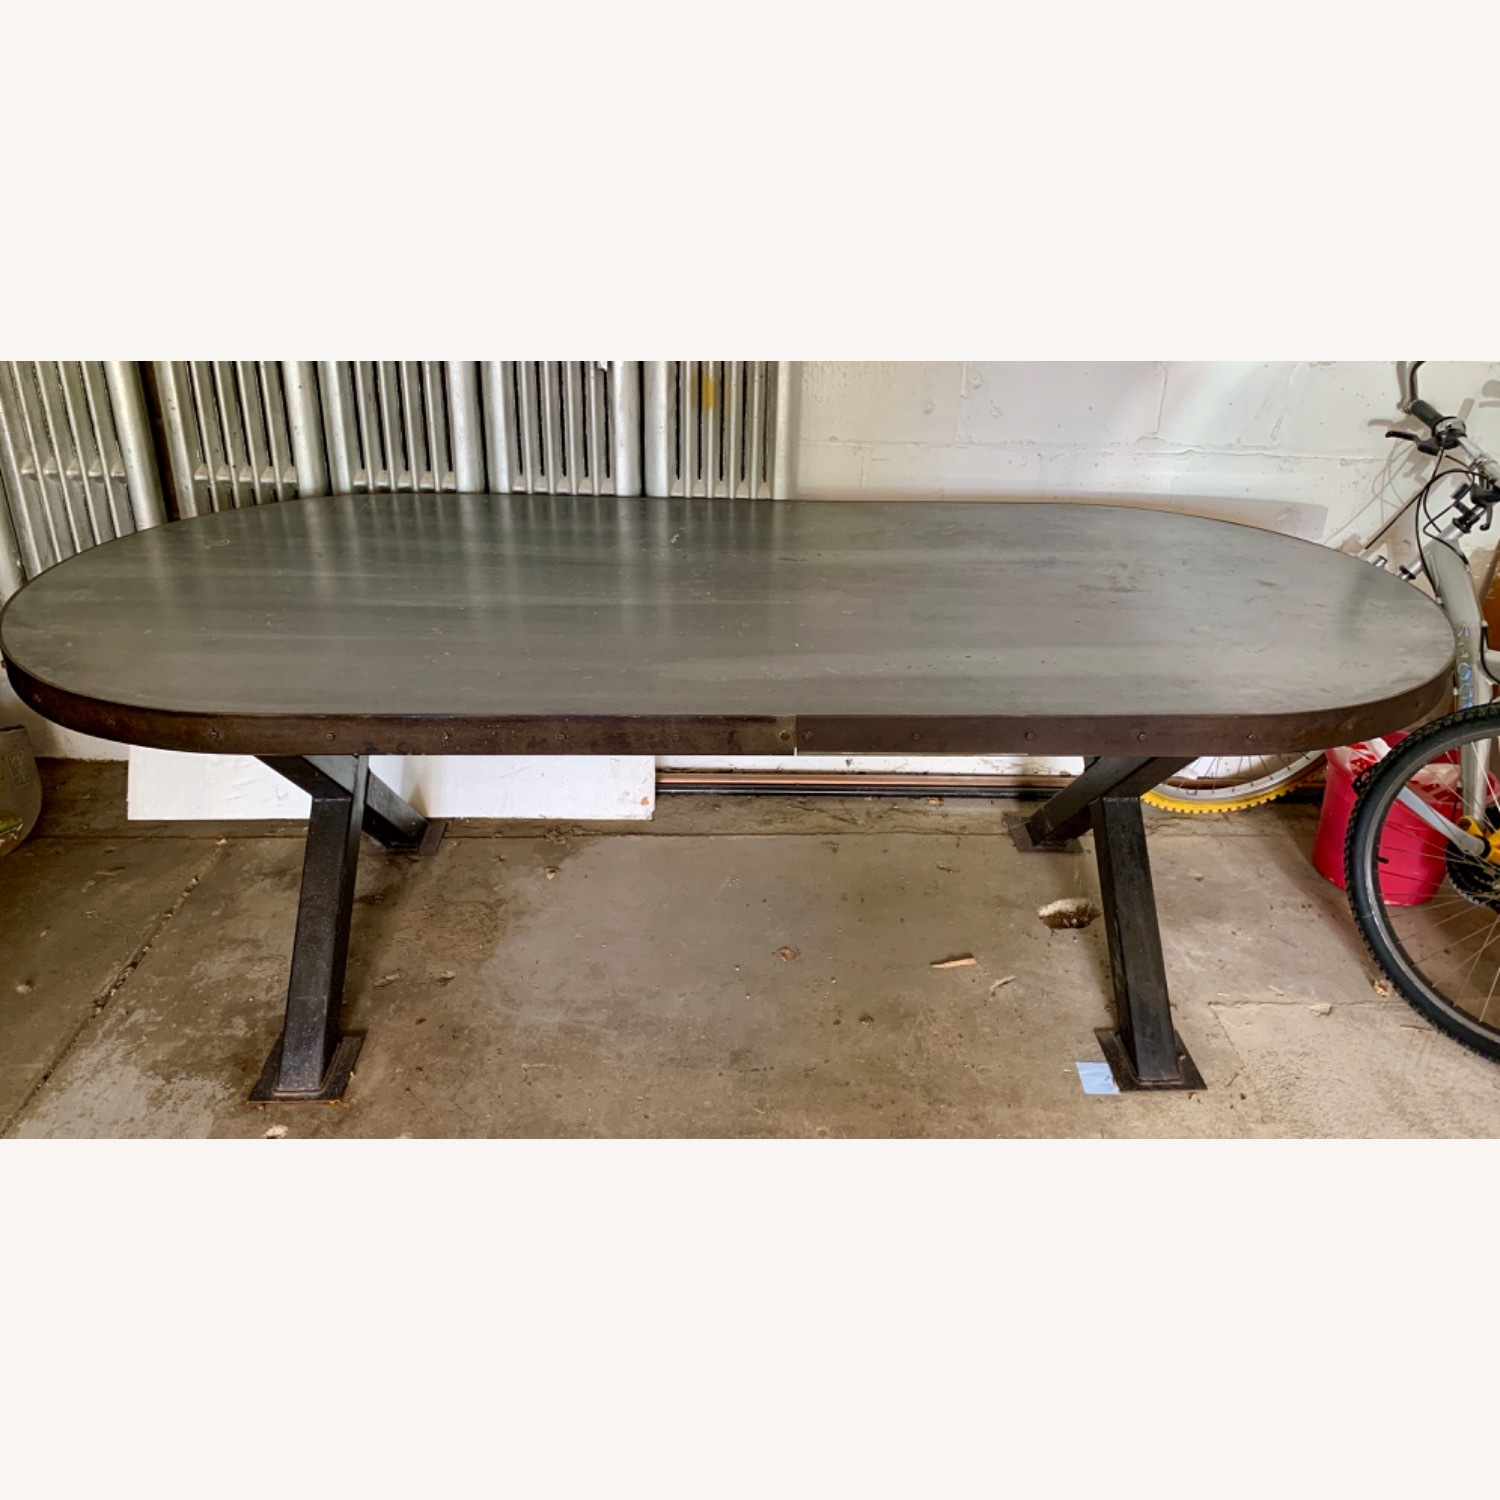 Unique Industrial Dining Table - image-1